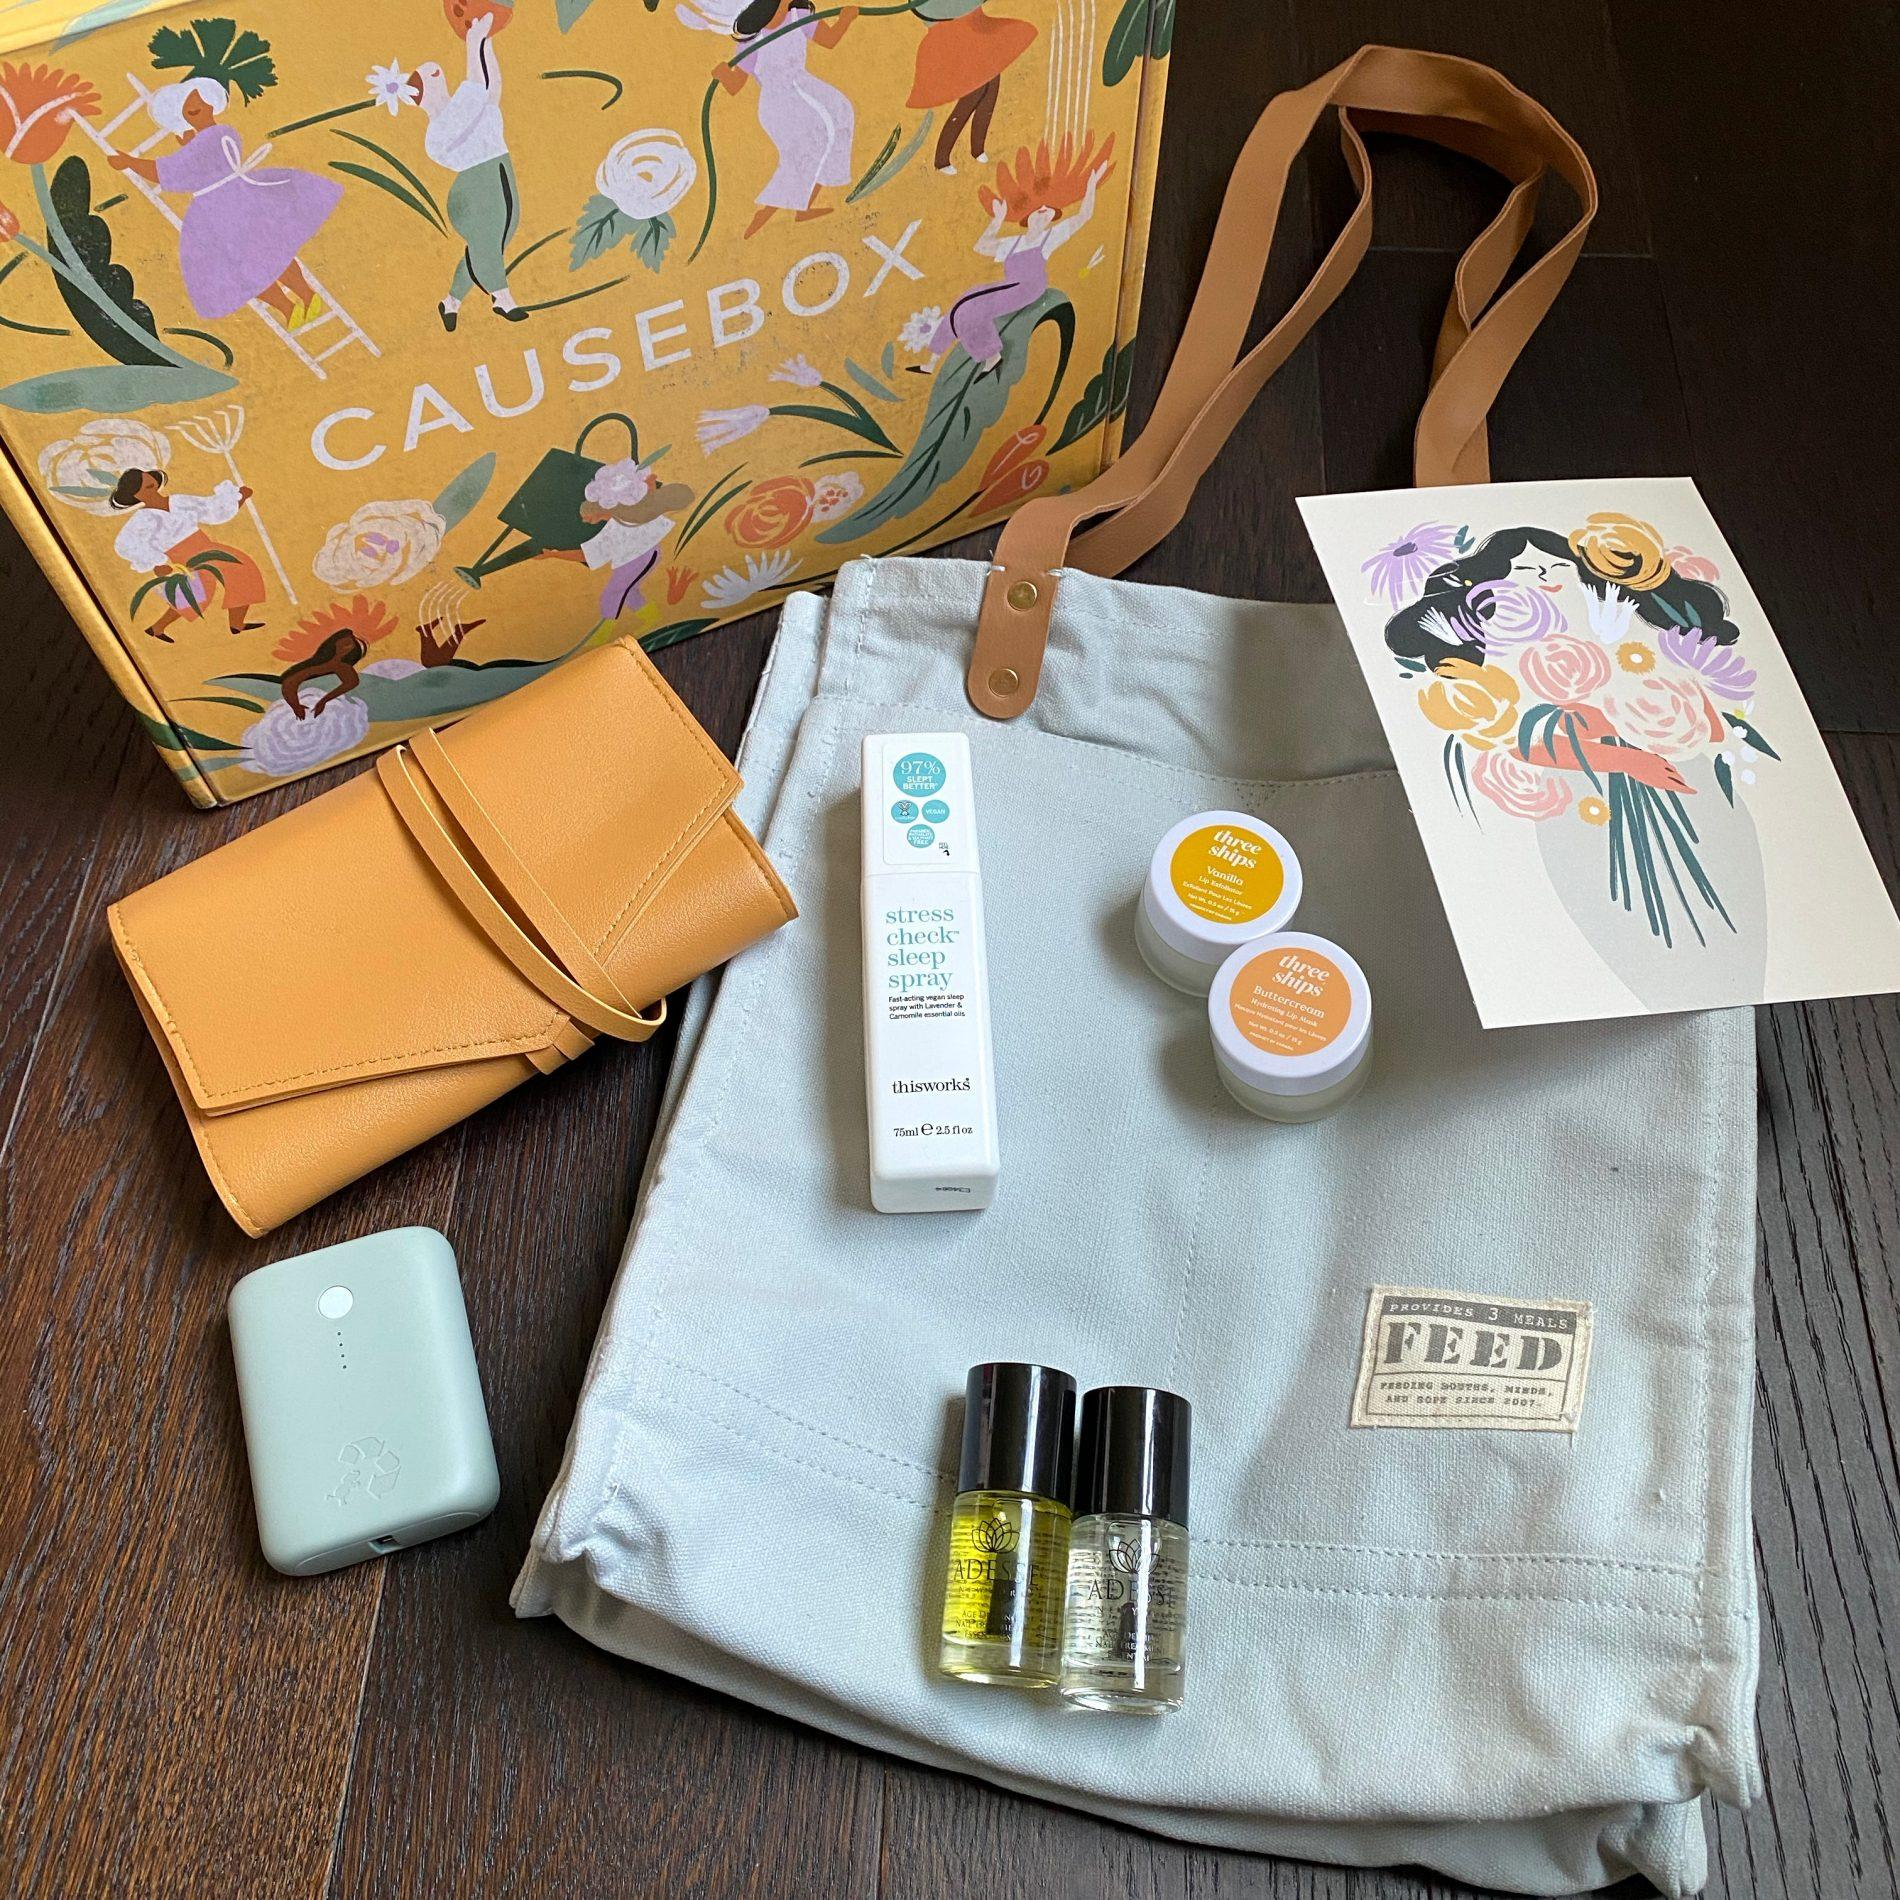 CAUSEBOX Review + Coupon Code – Spring 2021